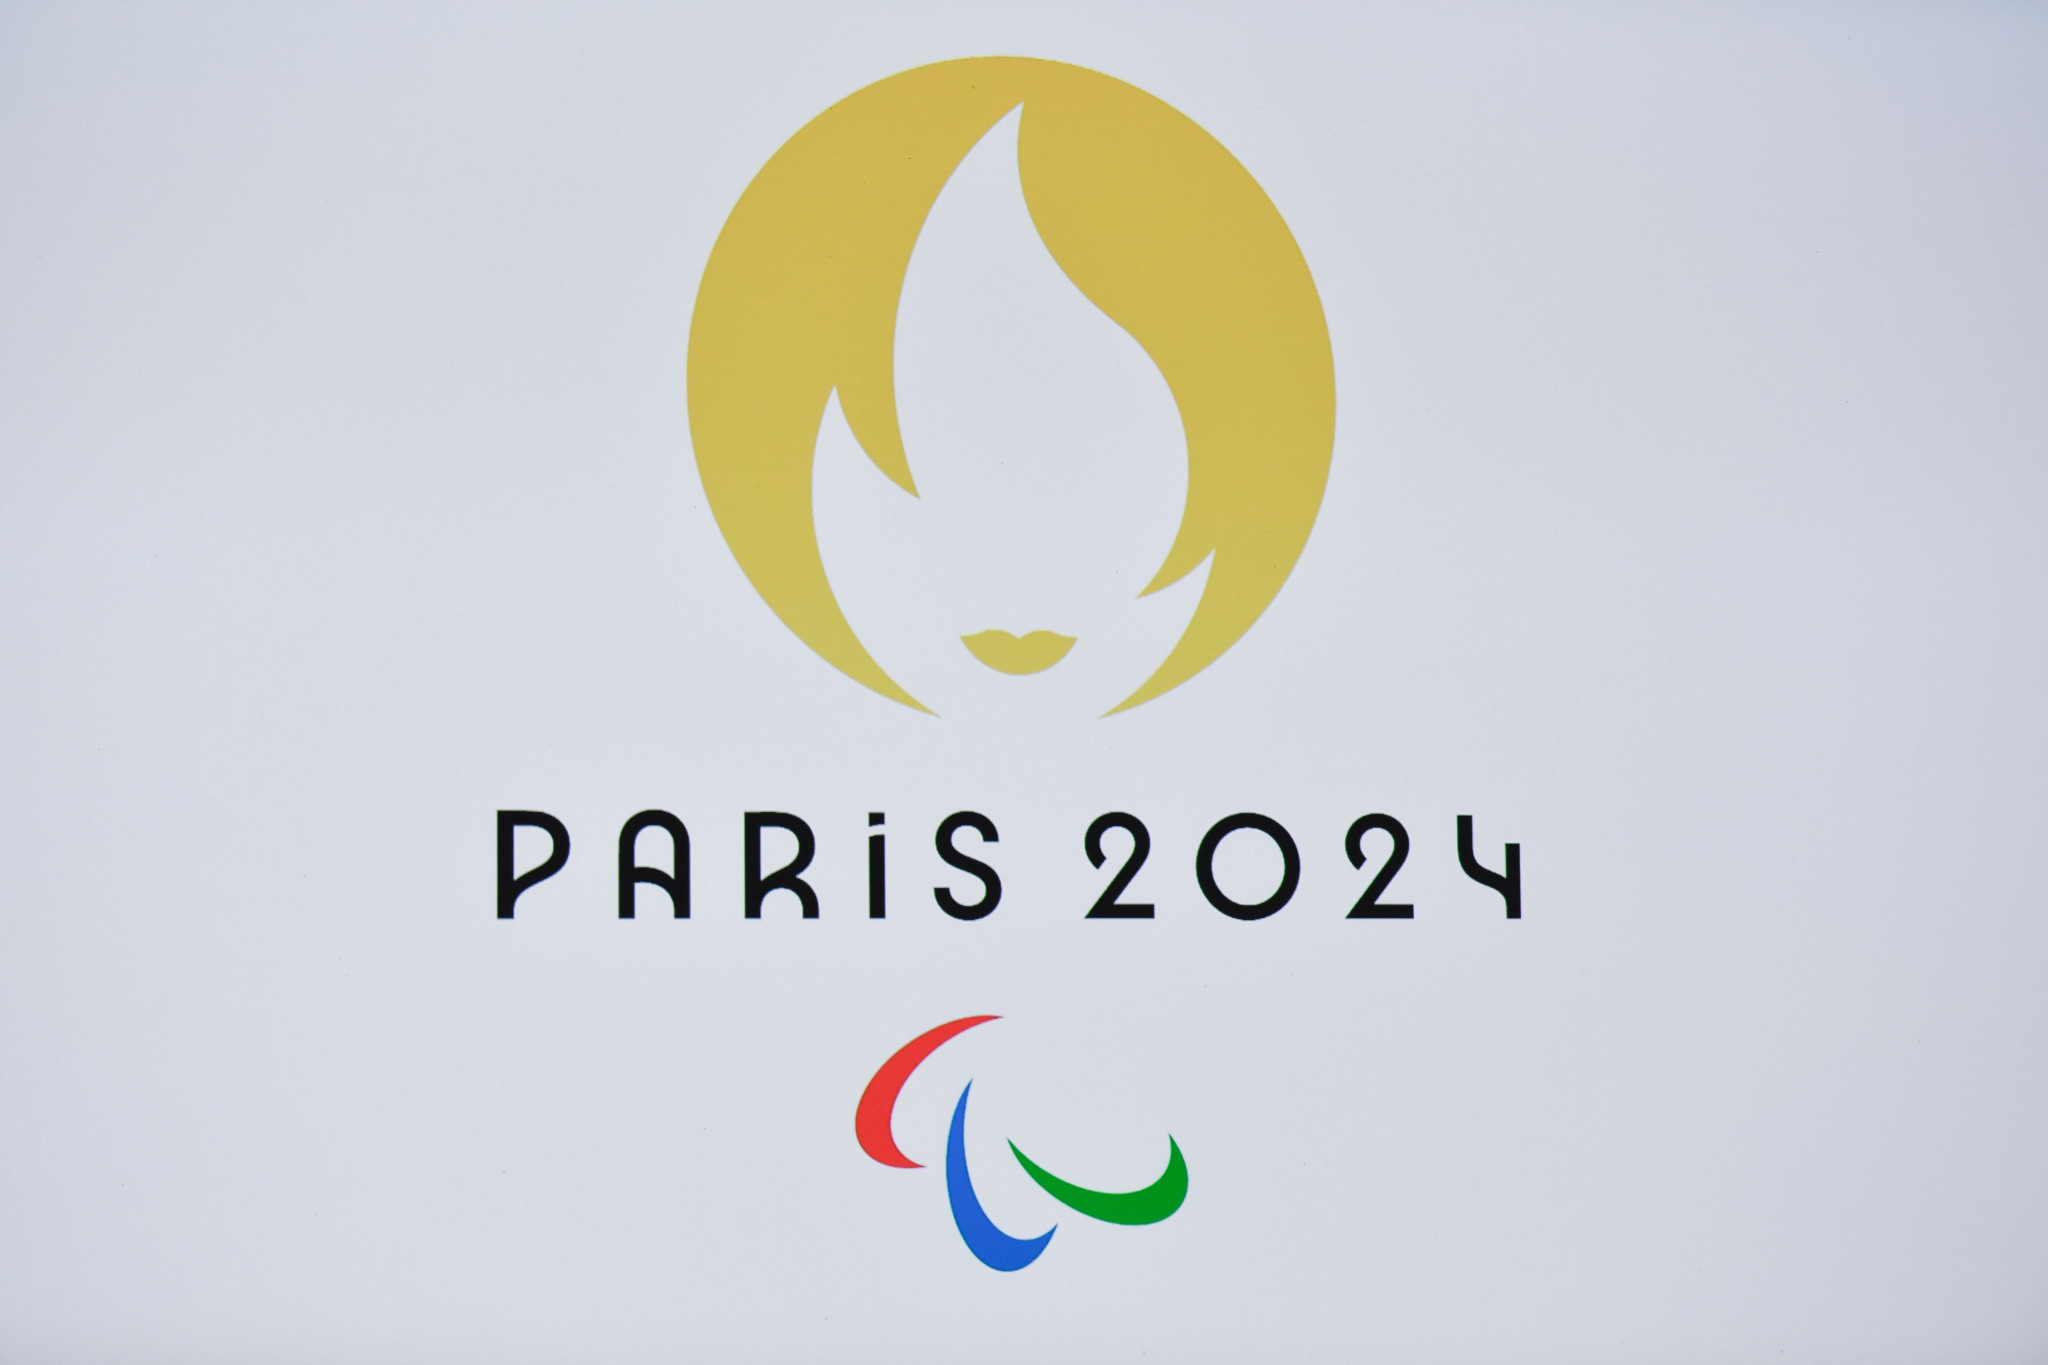 Projects receiving financial support from Paris 2024 heritage programme announced